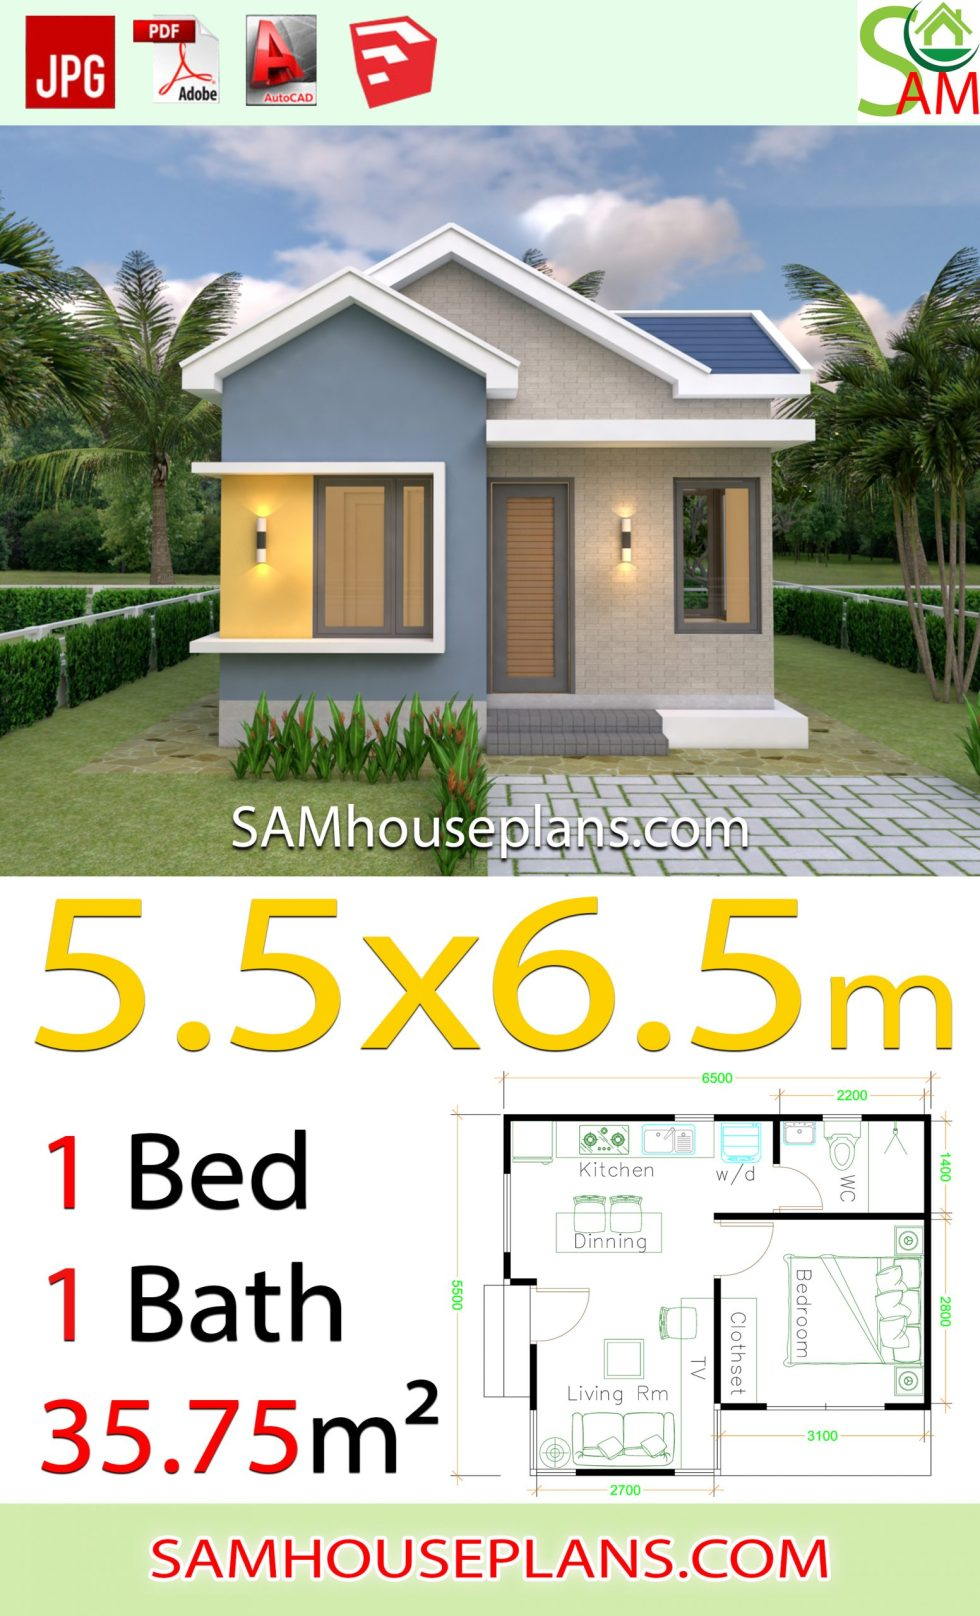 House design Plans 5.5x6.5 with One Bedroom Gable roof